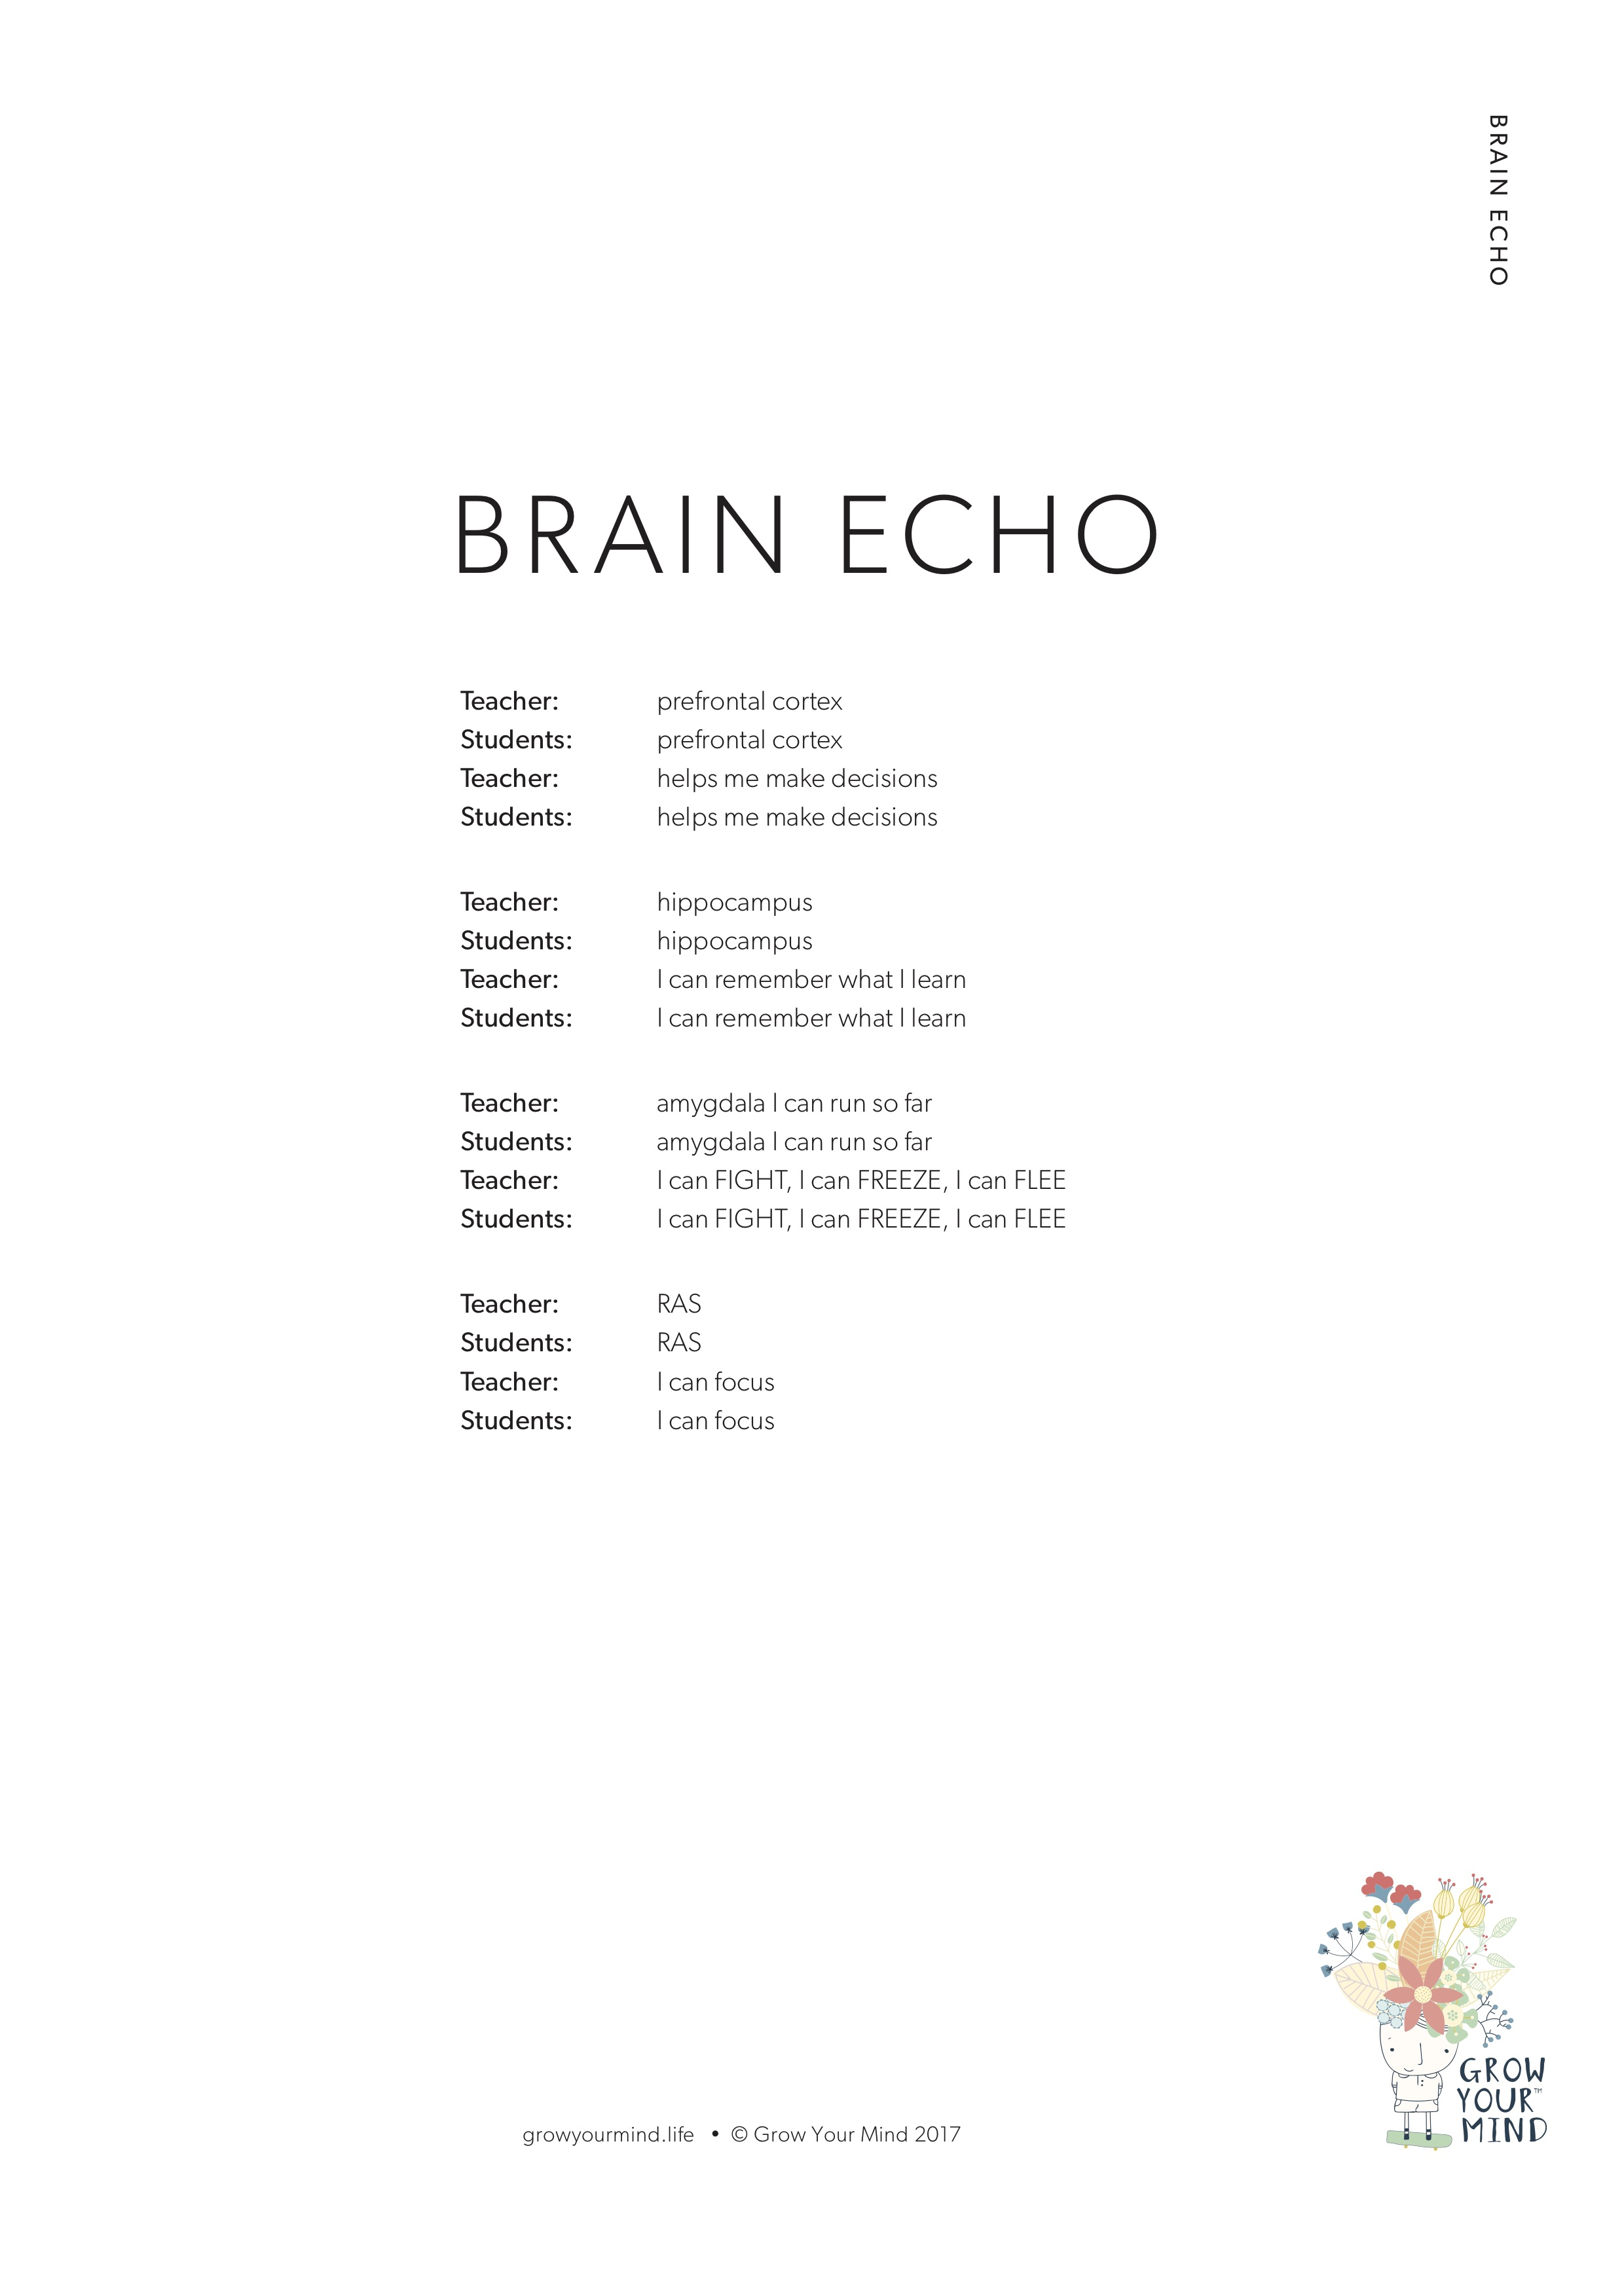 Brain Echo - A teacher resource to playfully teach the parts of the brain to Pre K - 6Theme: Brain awarenessTo go with: The Welcome to Grow Your Mind story and the Introductory lessons